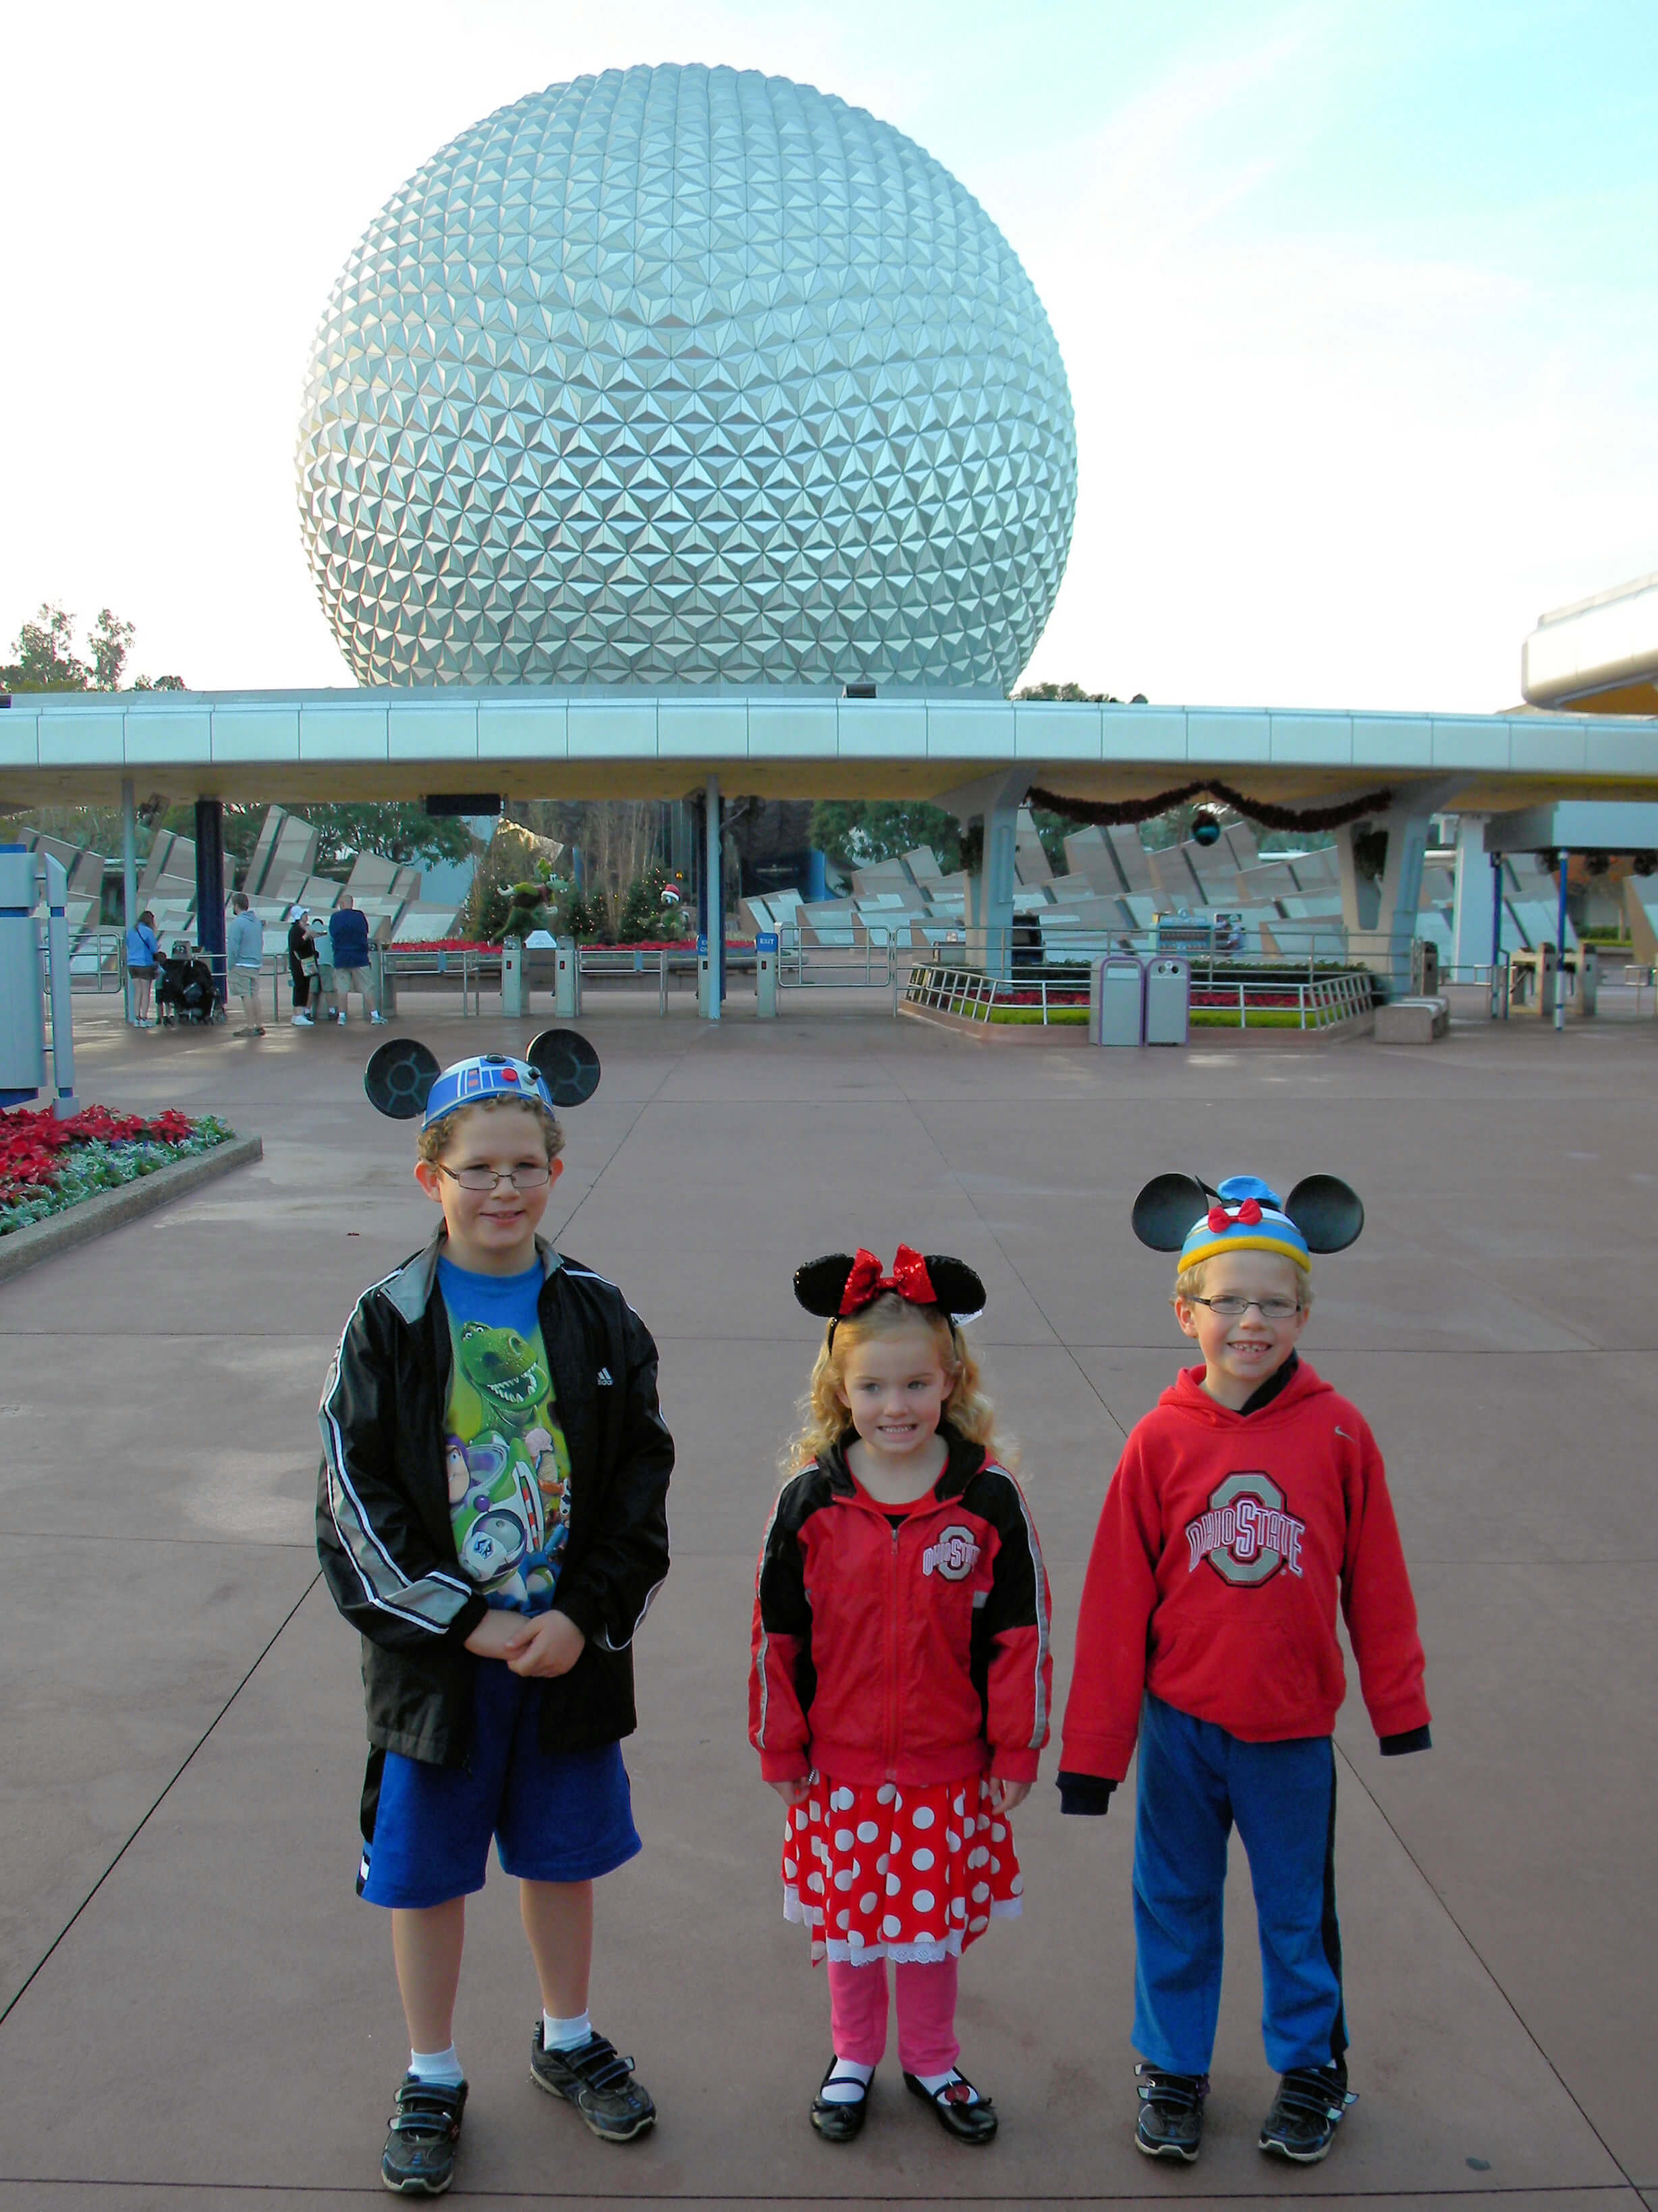 Top Tips to Optimize Your Disney World Vacation